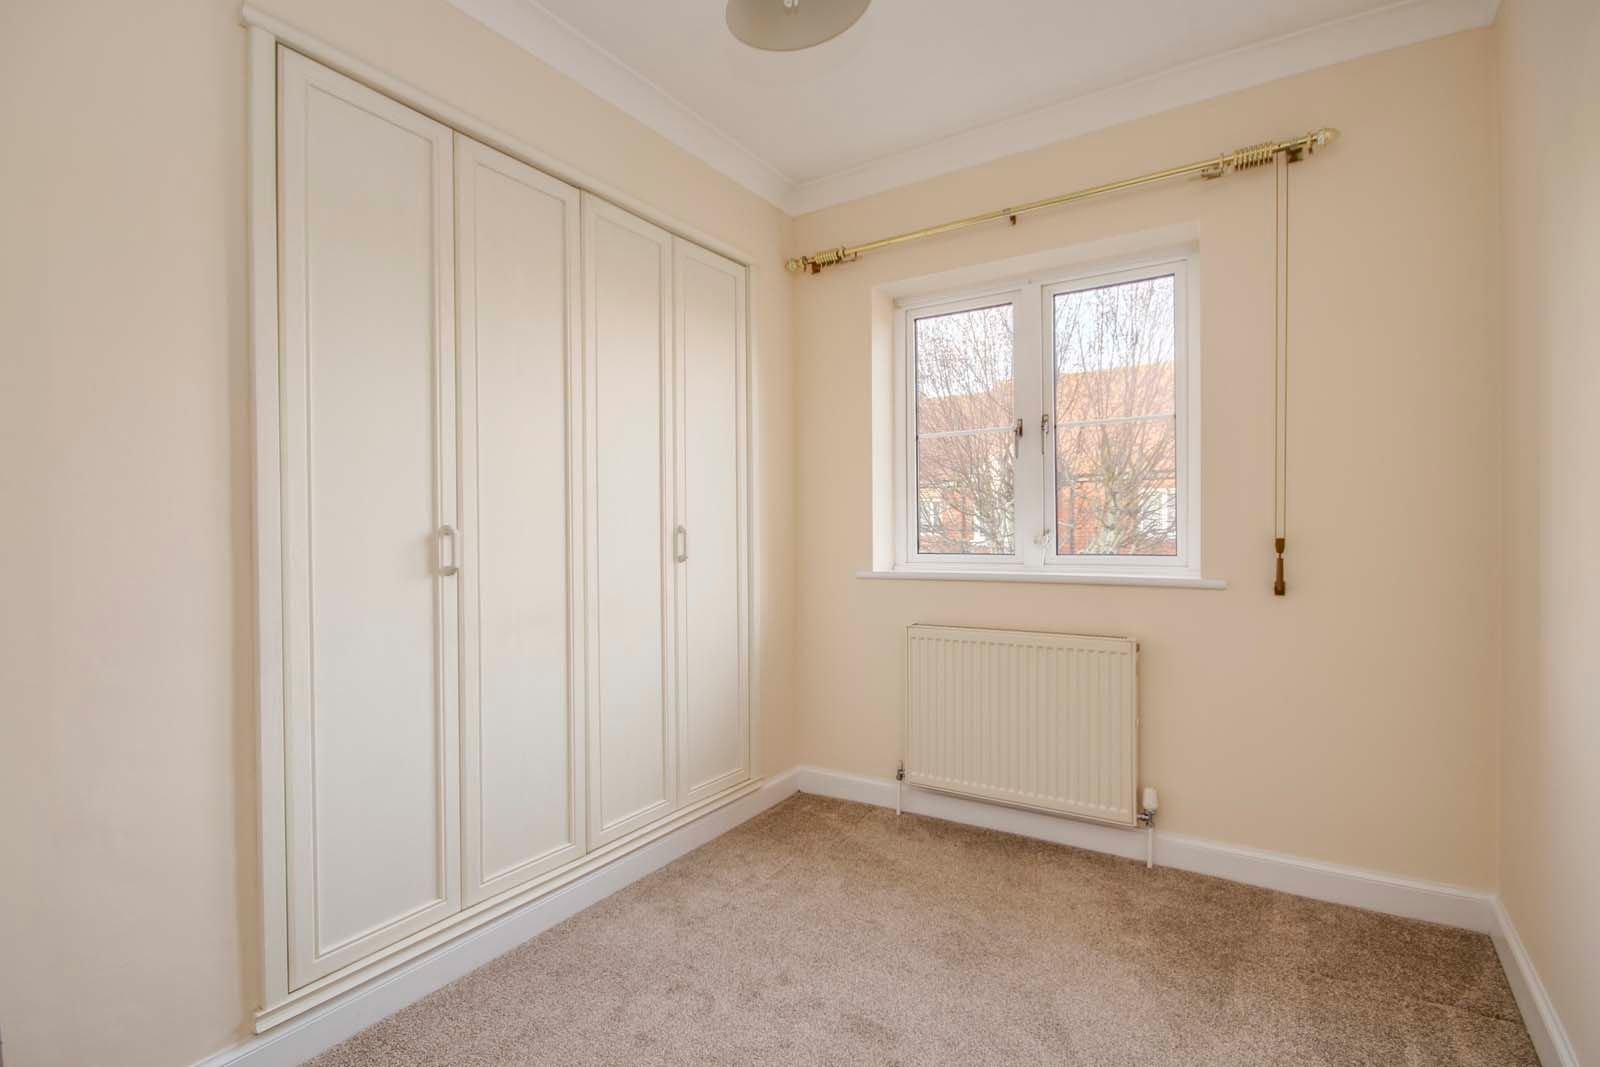 2 bed Apartment for sale in East Preston - Bedroom (Property Image 7)